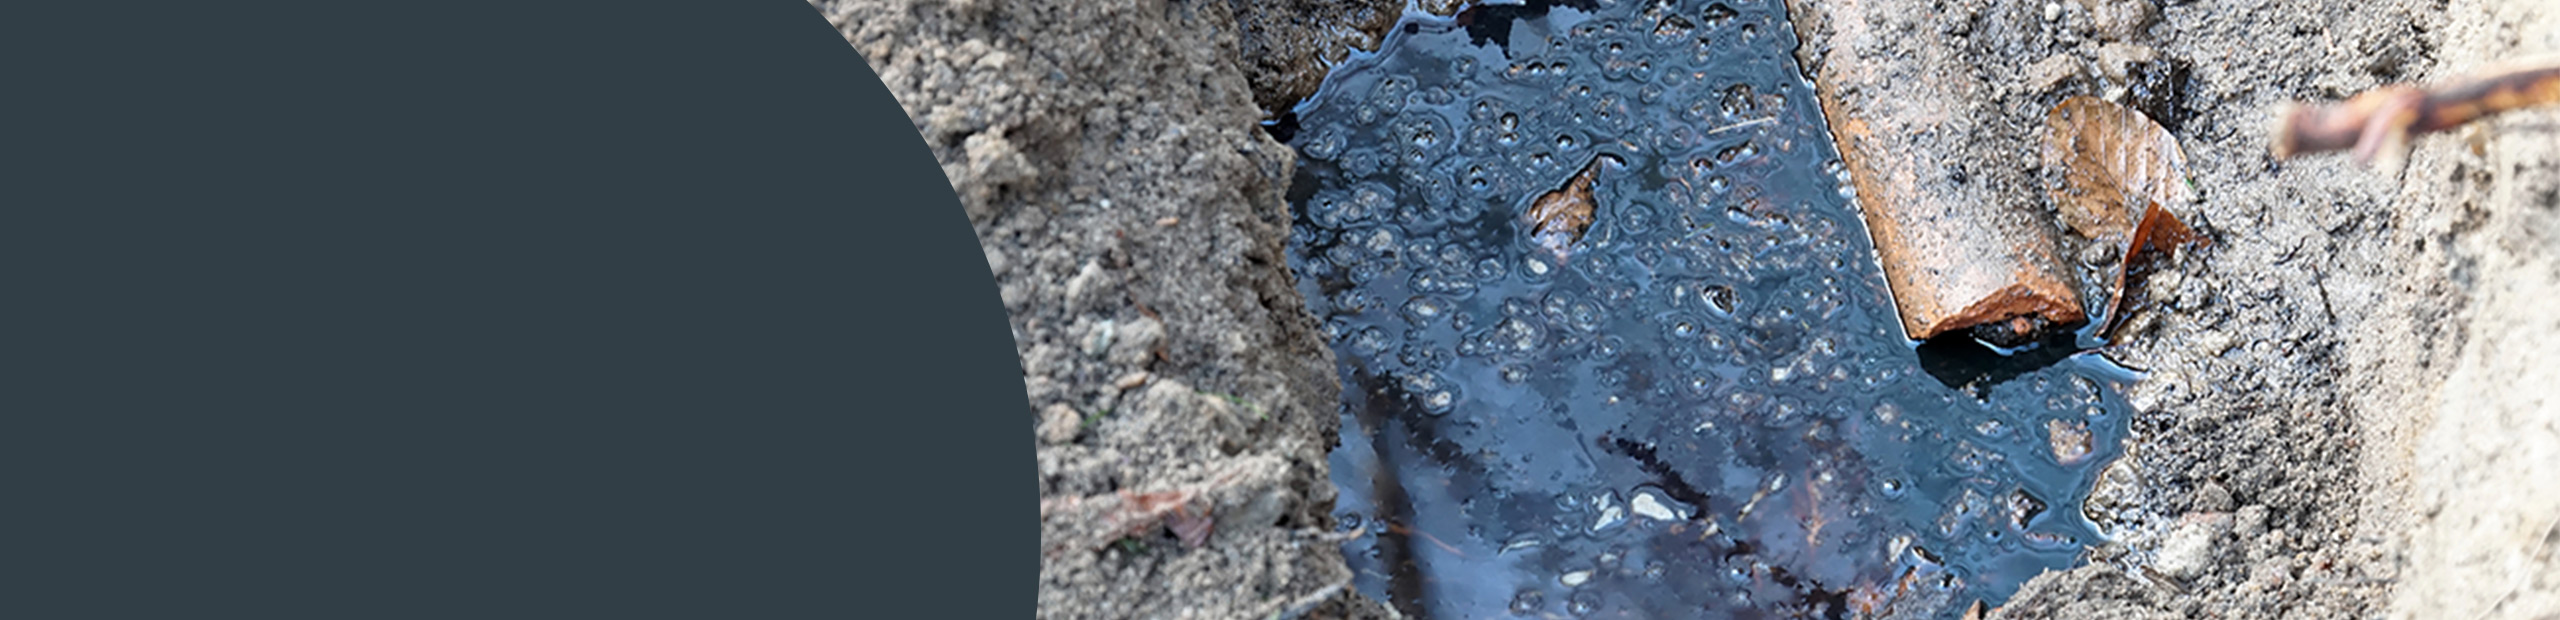 Soil Contamination Cleanup